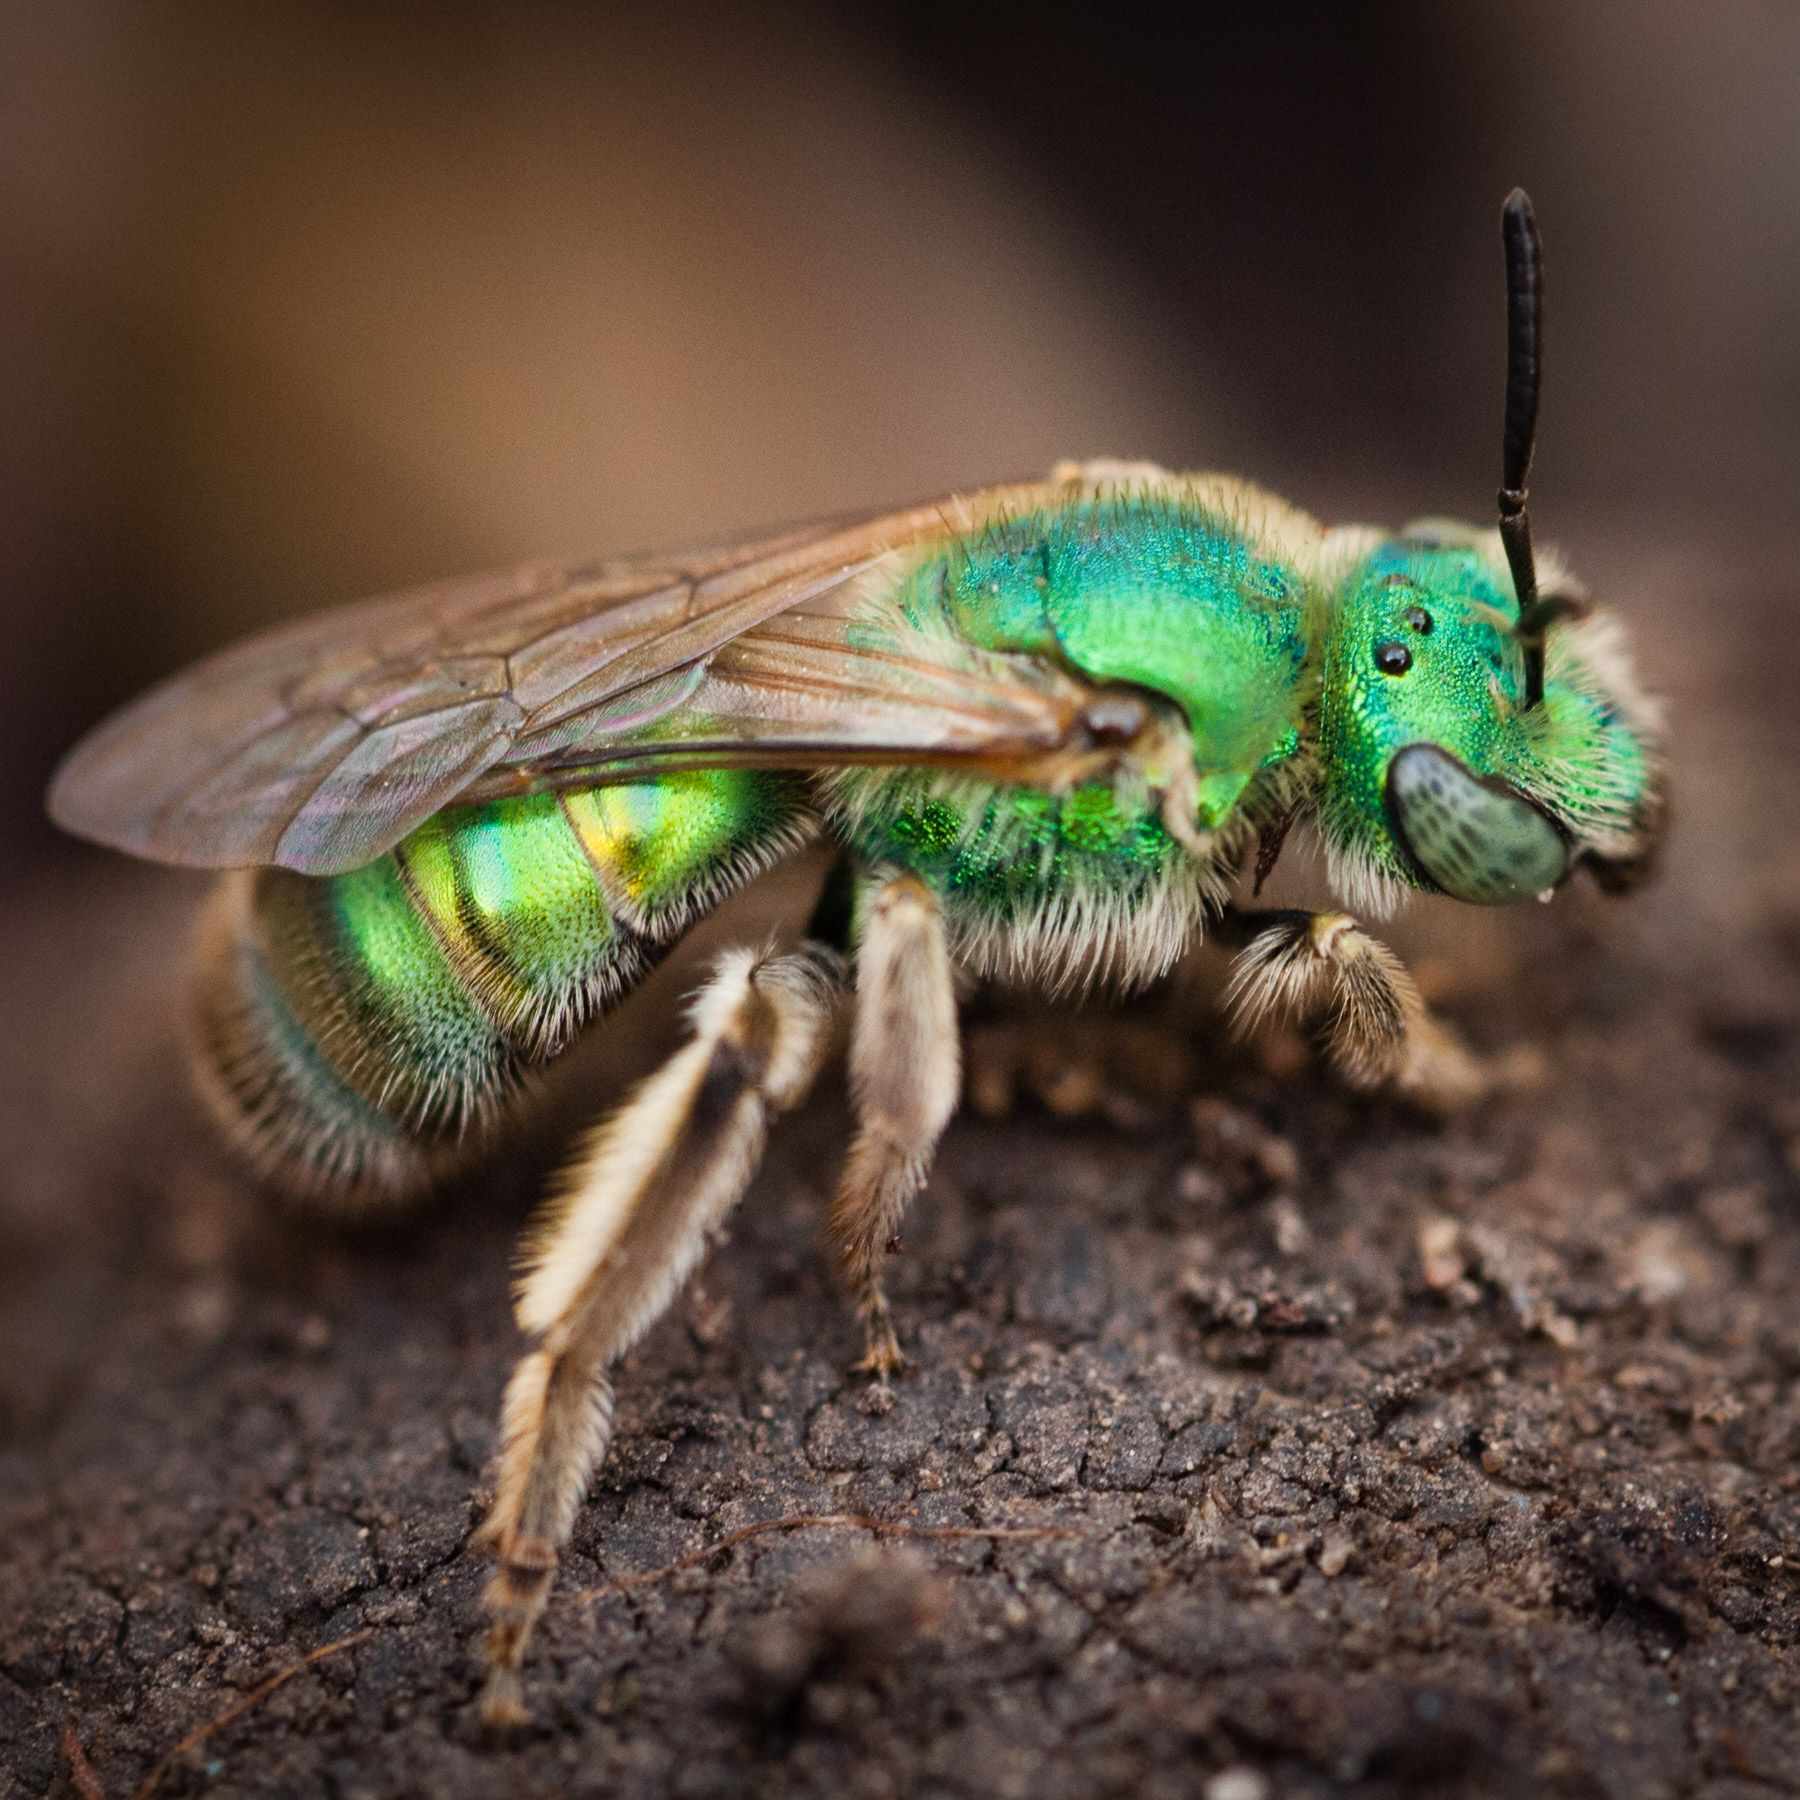 How To Get Rid Of Sweat Bees Be Persistent 2021 Sweat Bees Pollinator Week Bee